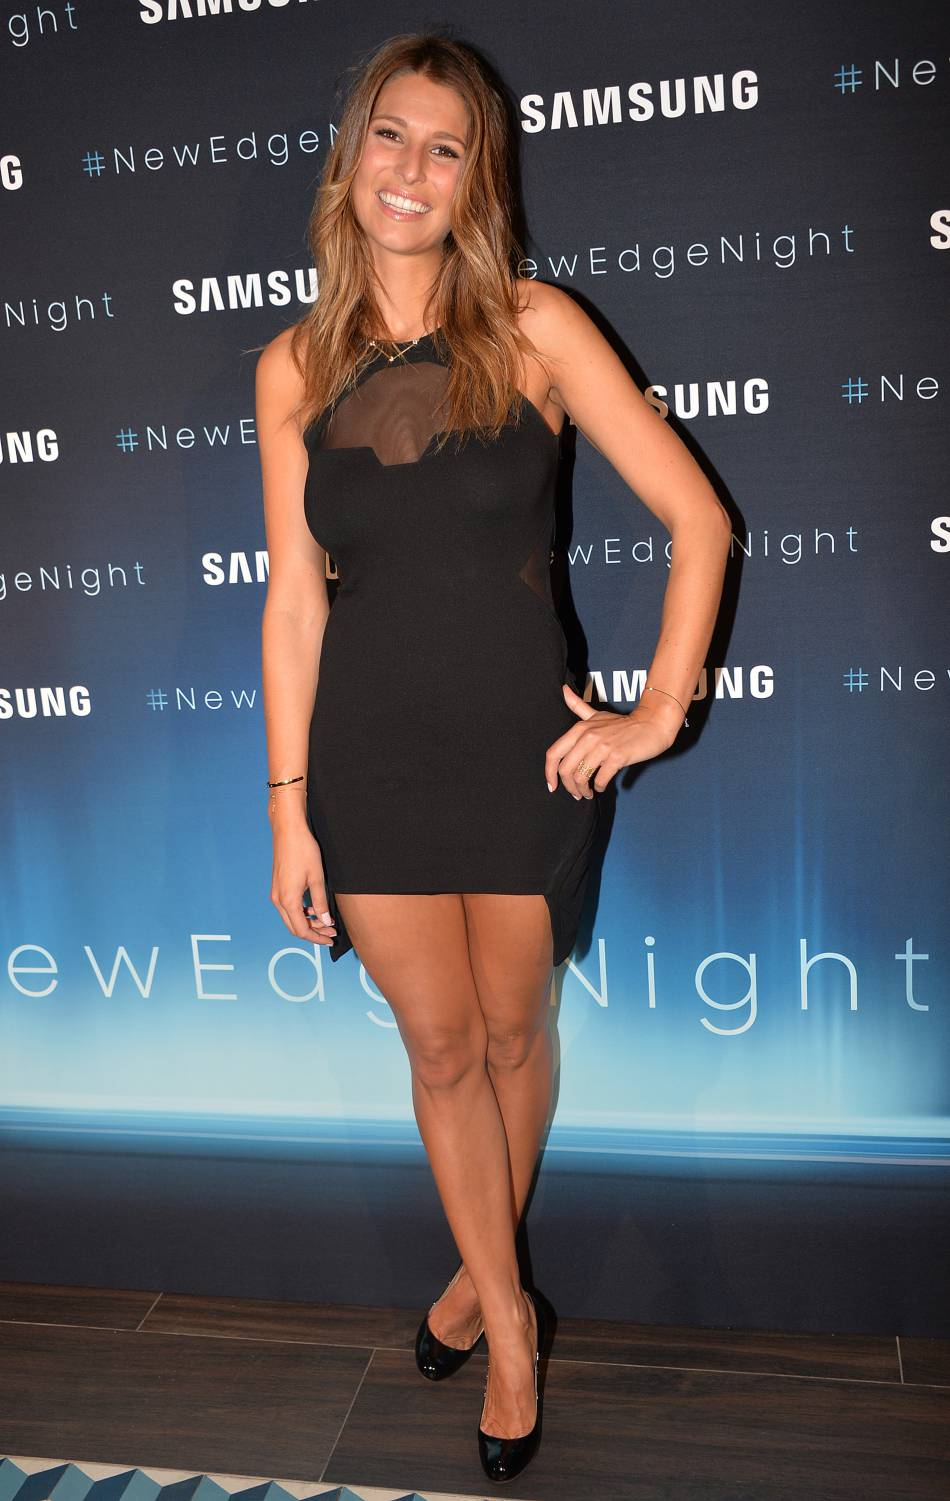 Photos Laury Thilleman naked (59 photos), Topless, Paparazzi, Instagram, cameltoe 2015